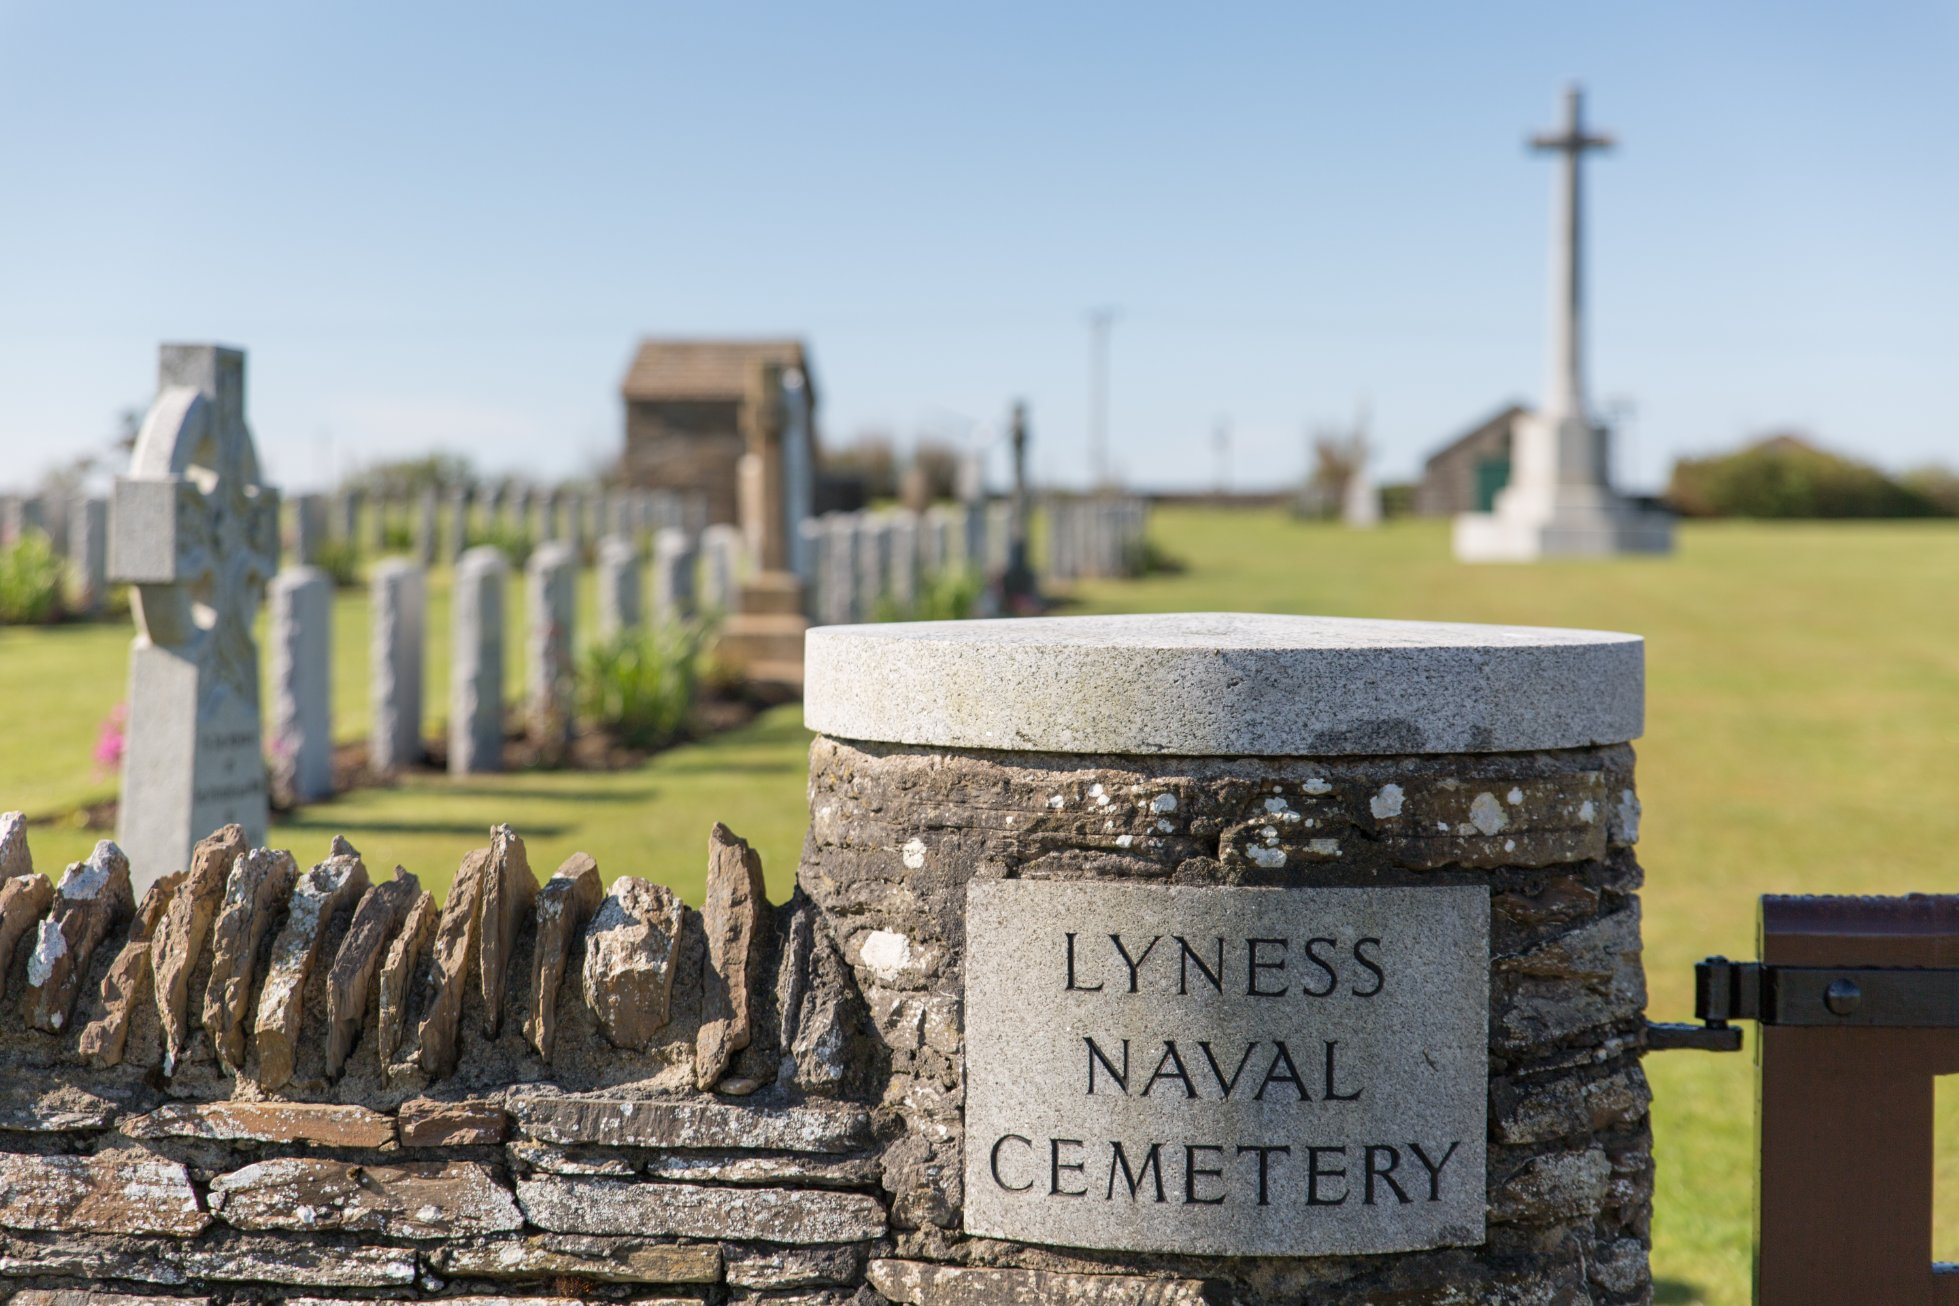 The Lyness Naval Cemetery in Hoy, Orkney